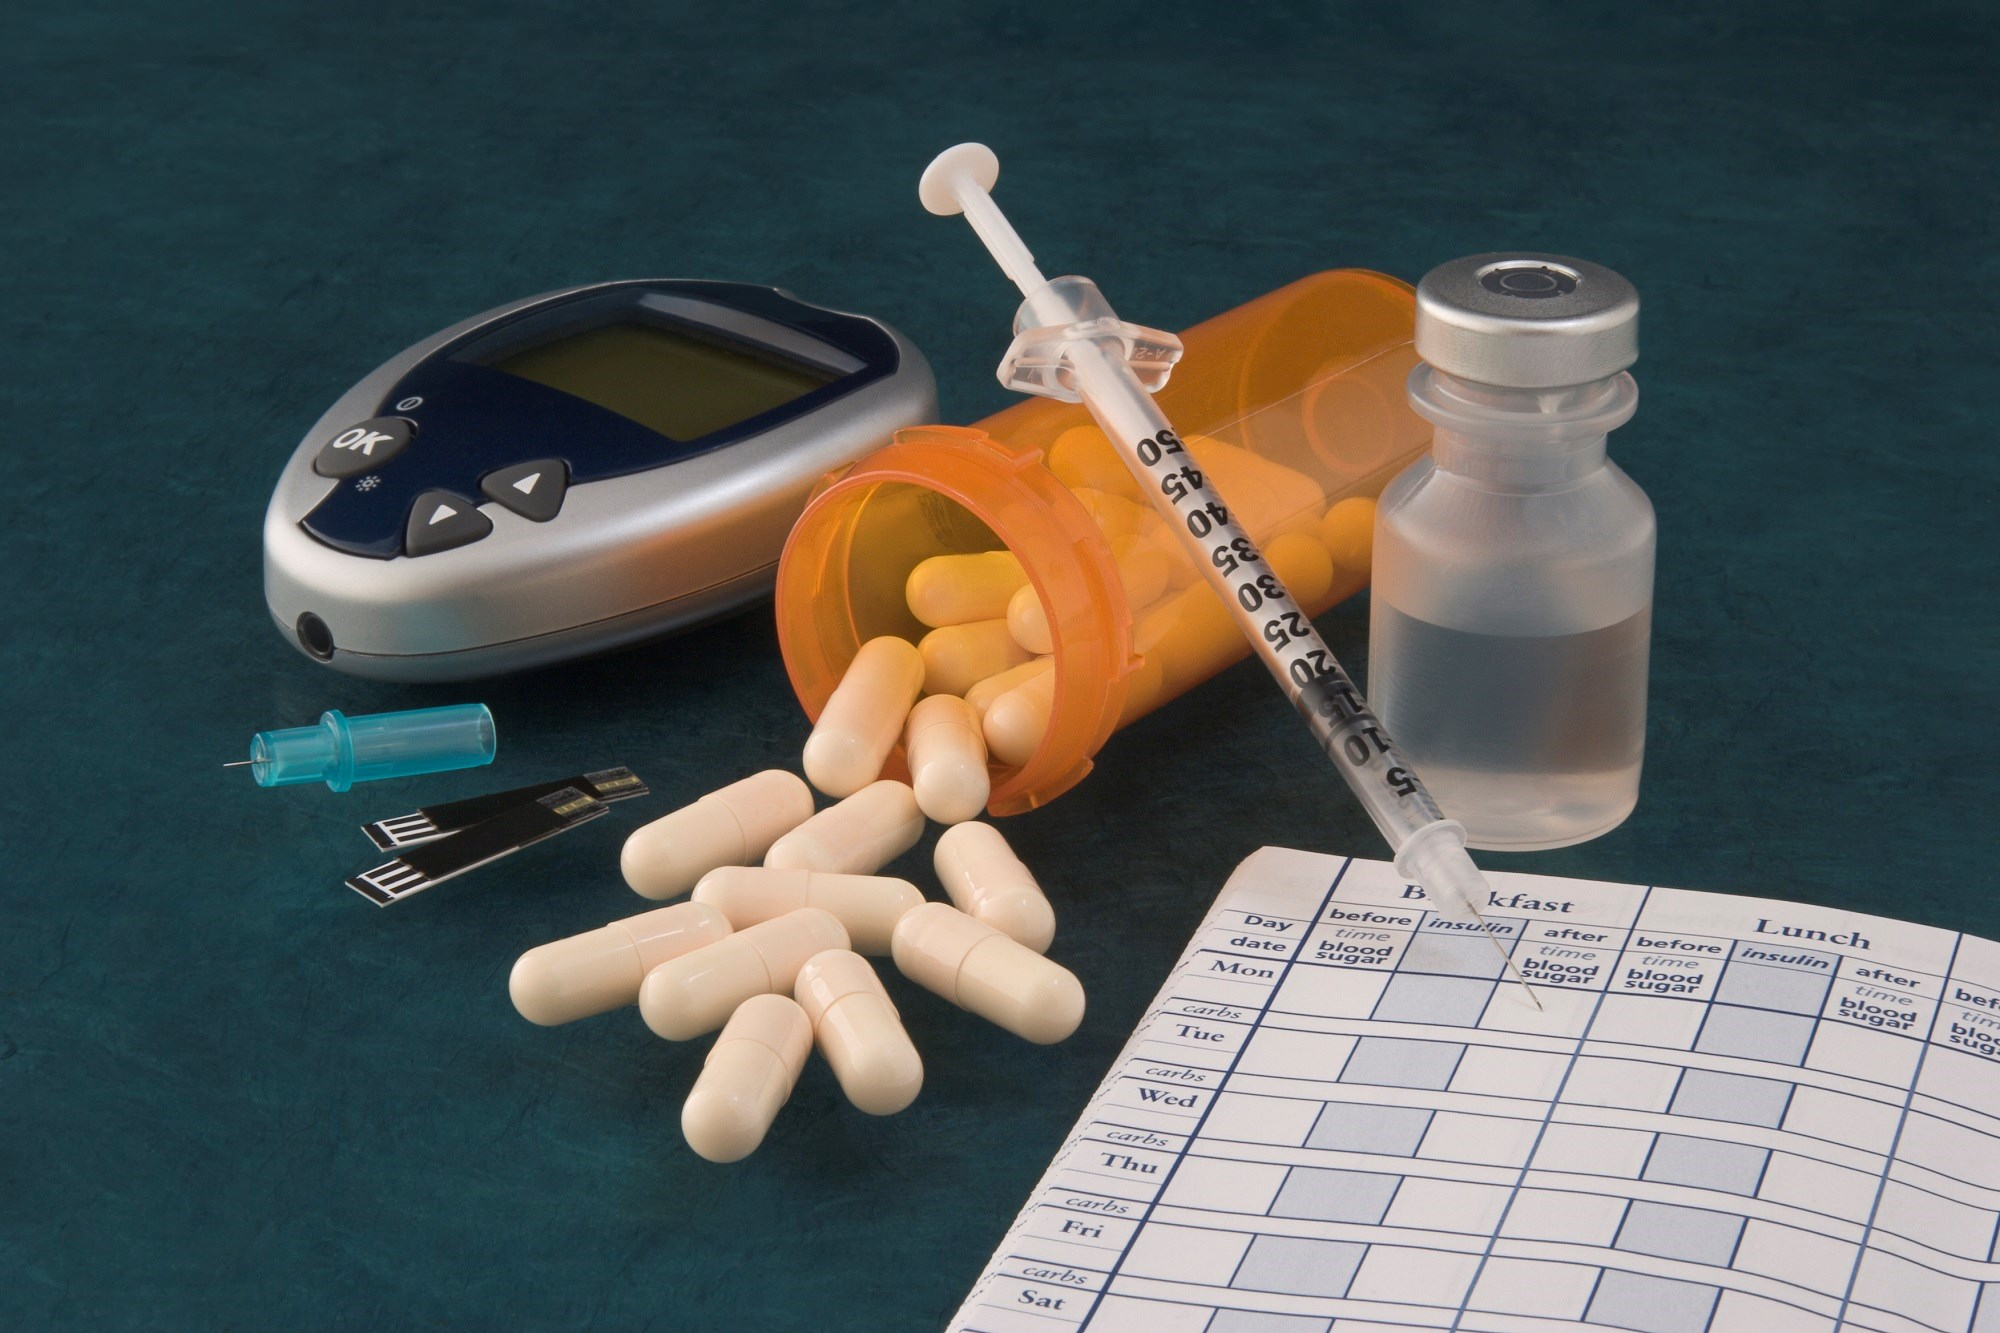 Basal Insulin Combination Therapies With Vildagliptin or Lixisenatide Equally Effective for T2D